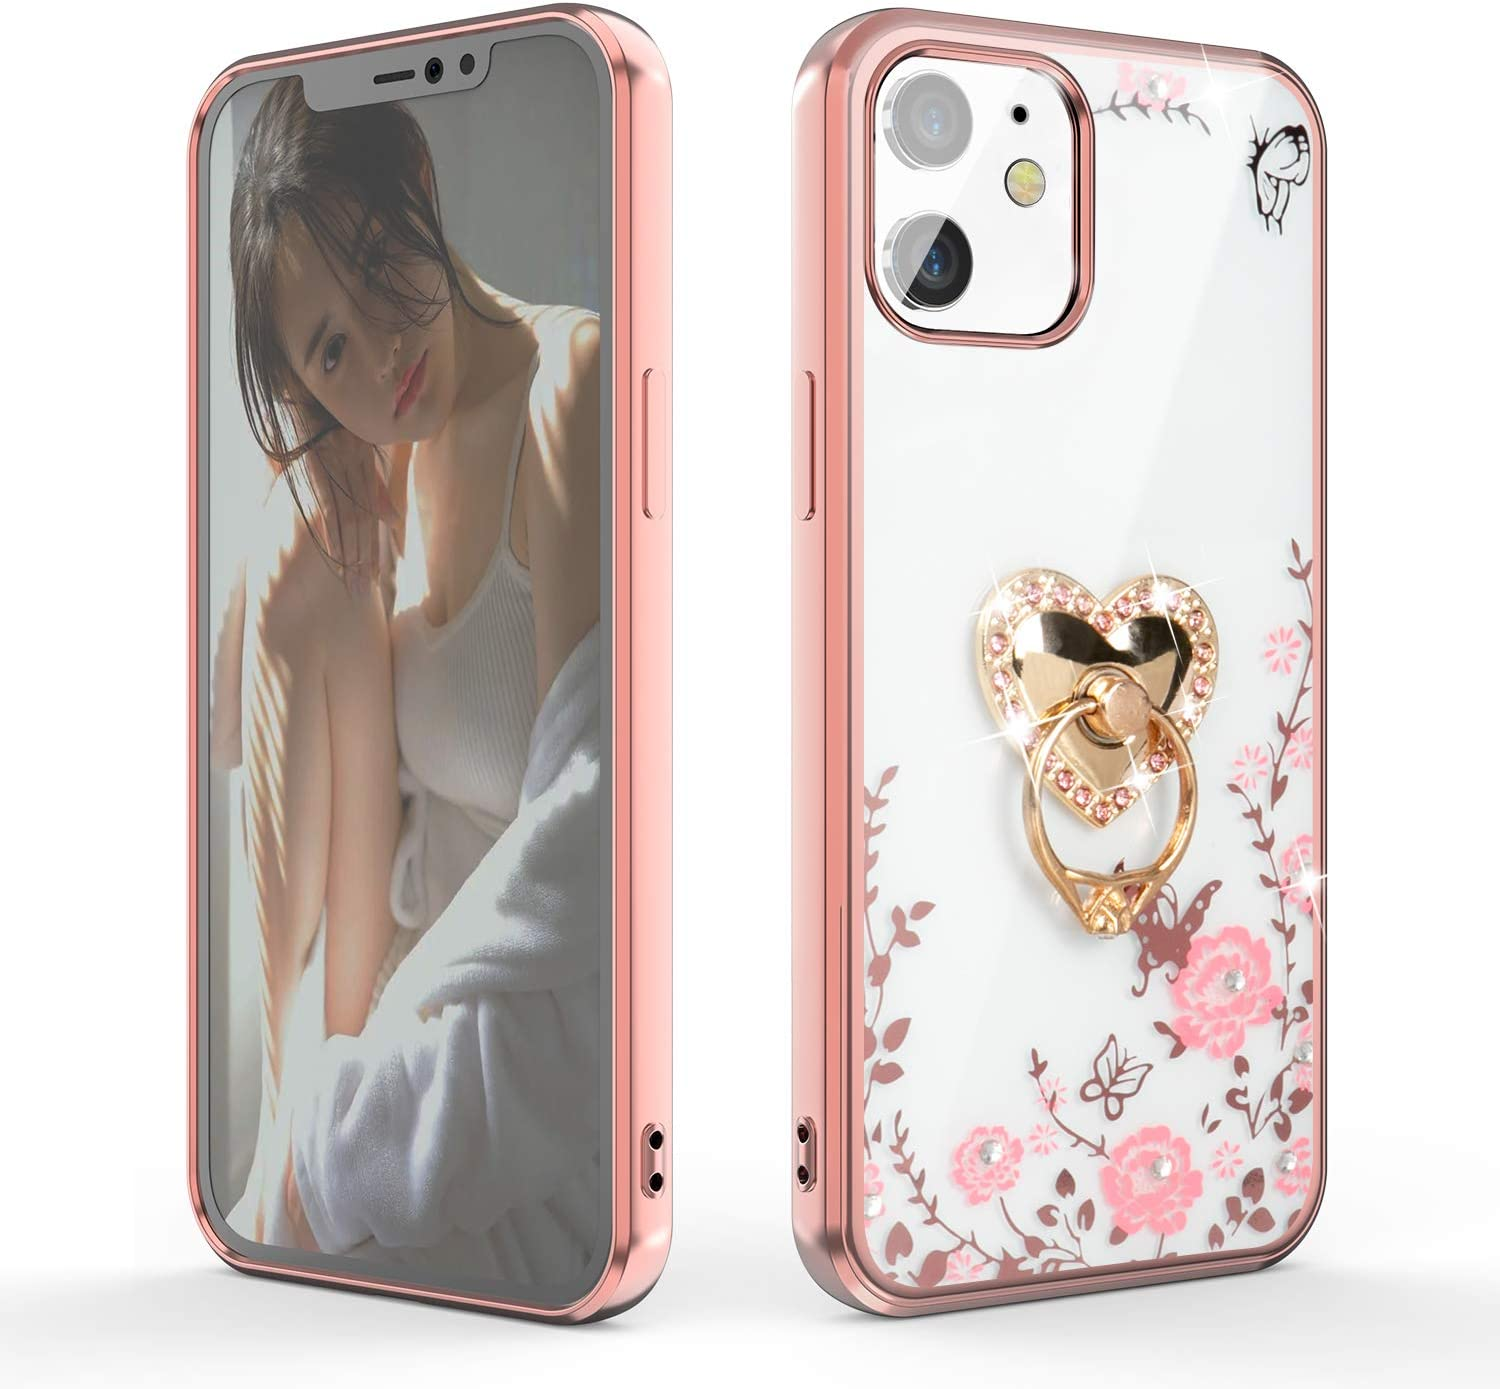 WATACHE for iPhone 12 Case,for iPhone 12 Pro Case,Glitter Diamond Secret Garden Floral Butterfly Clear Back Soft TPU Case with Shiny Rhinestone Ring Grip Holder Stand for iPhone 12/12 Pro,Rose Gold